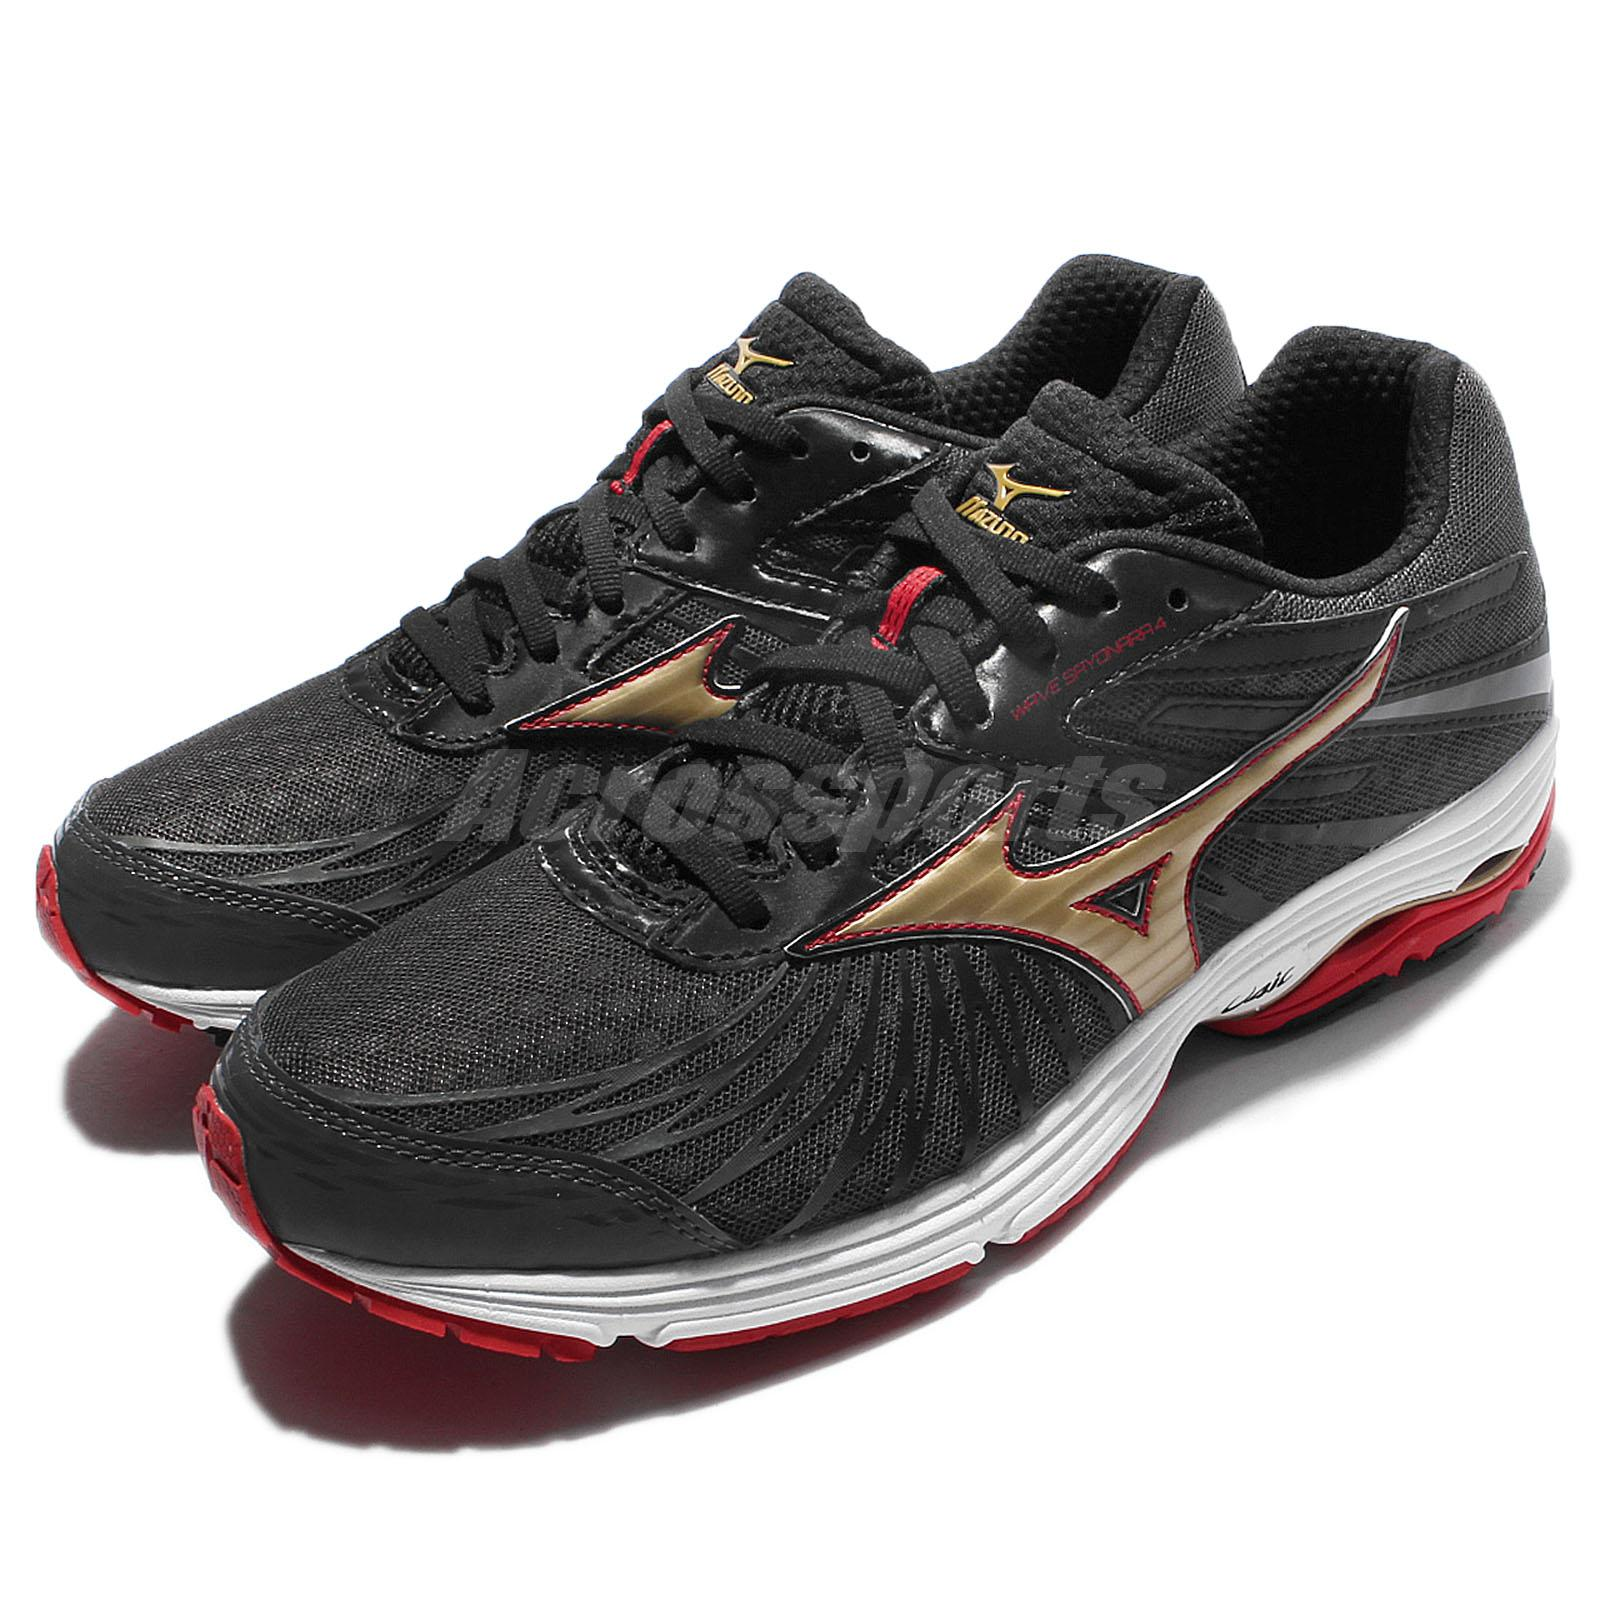 256b8406bf2d Details about Mizuno Wave Sayonara 4 Black Red Men Running Shoes Sneakers  Trainers J1GC16-3050